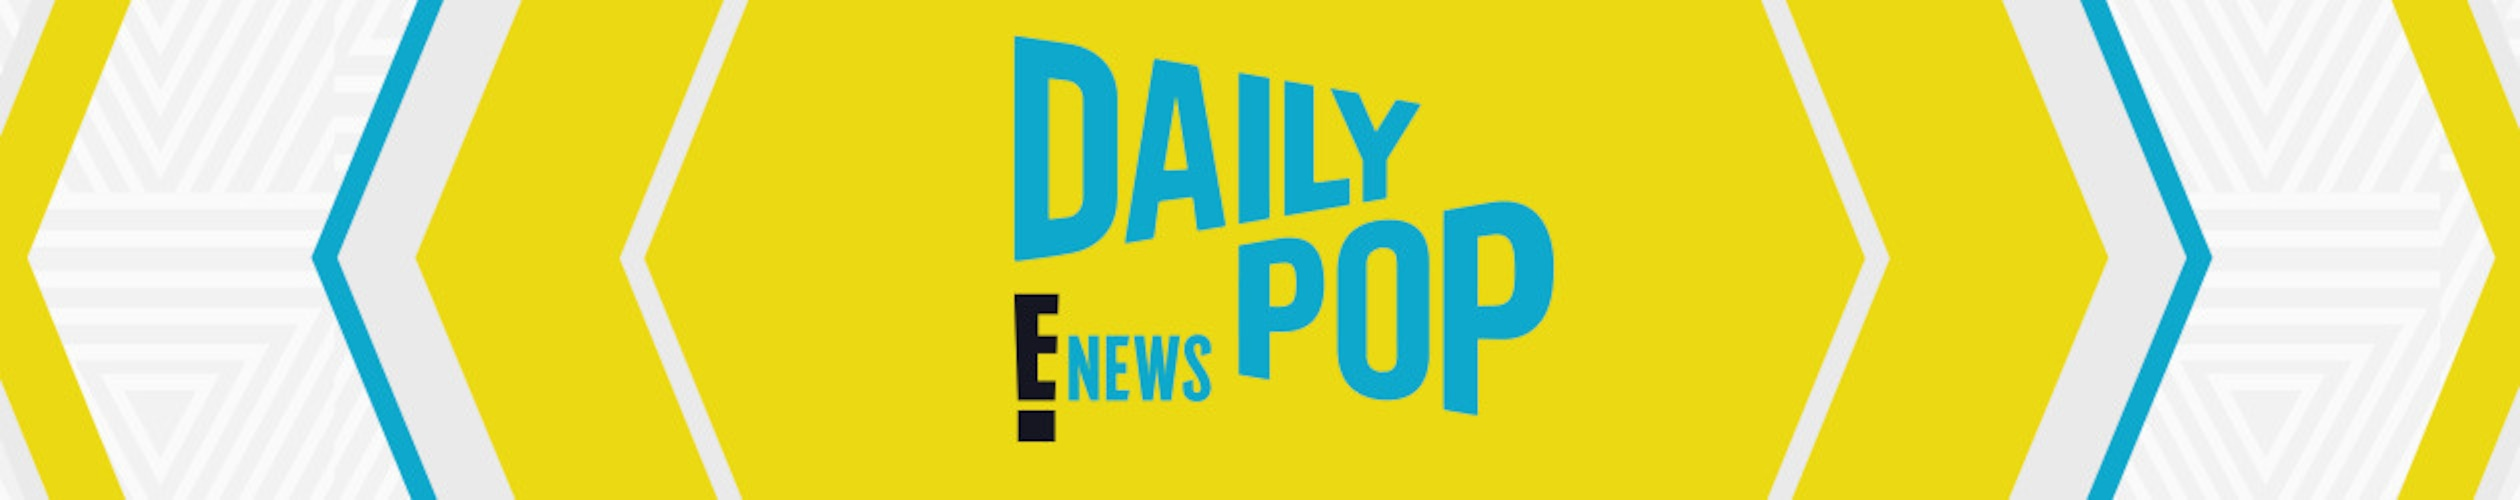 Daily Pop Tune-In Banner